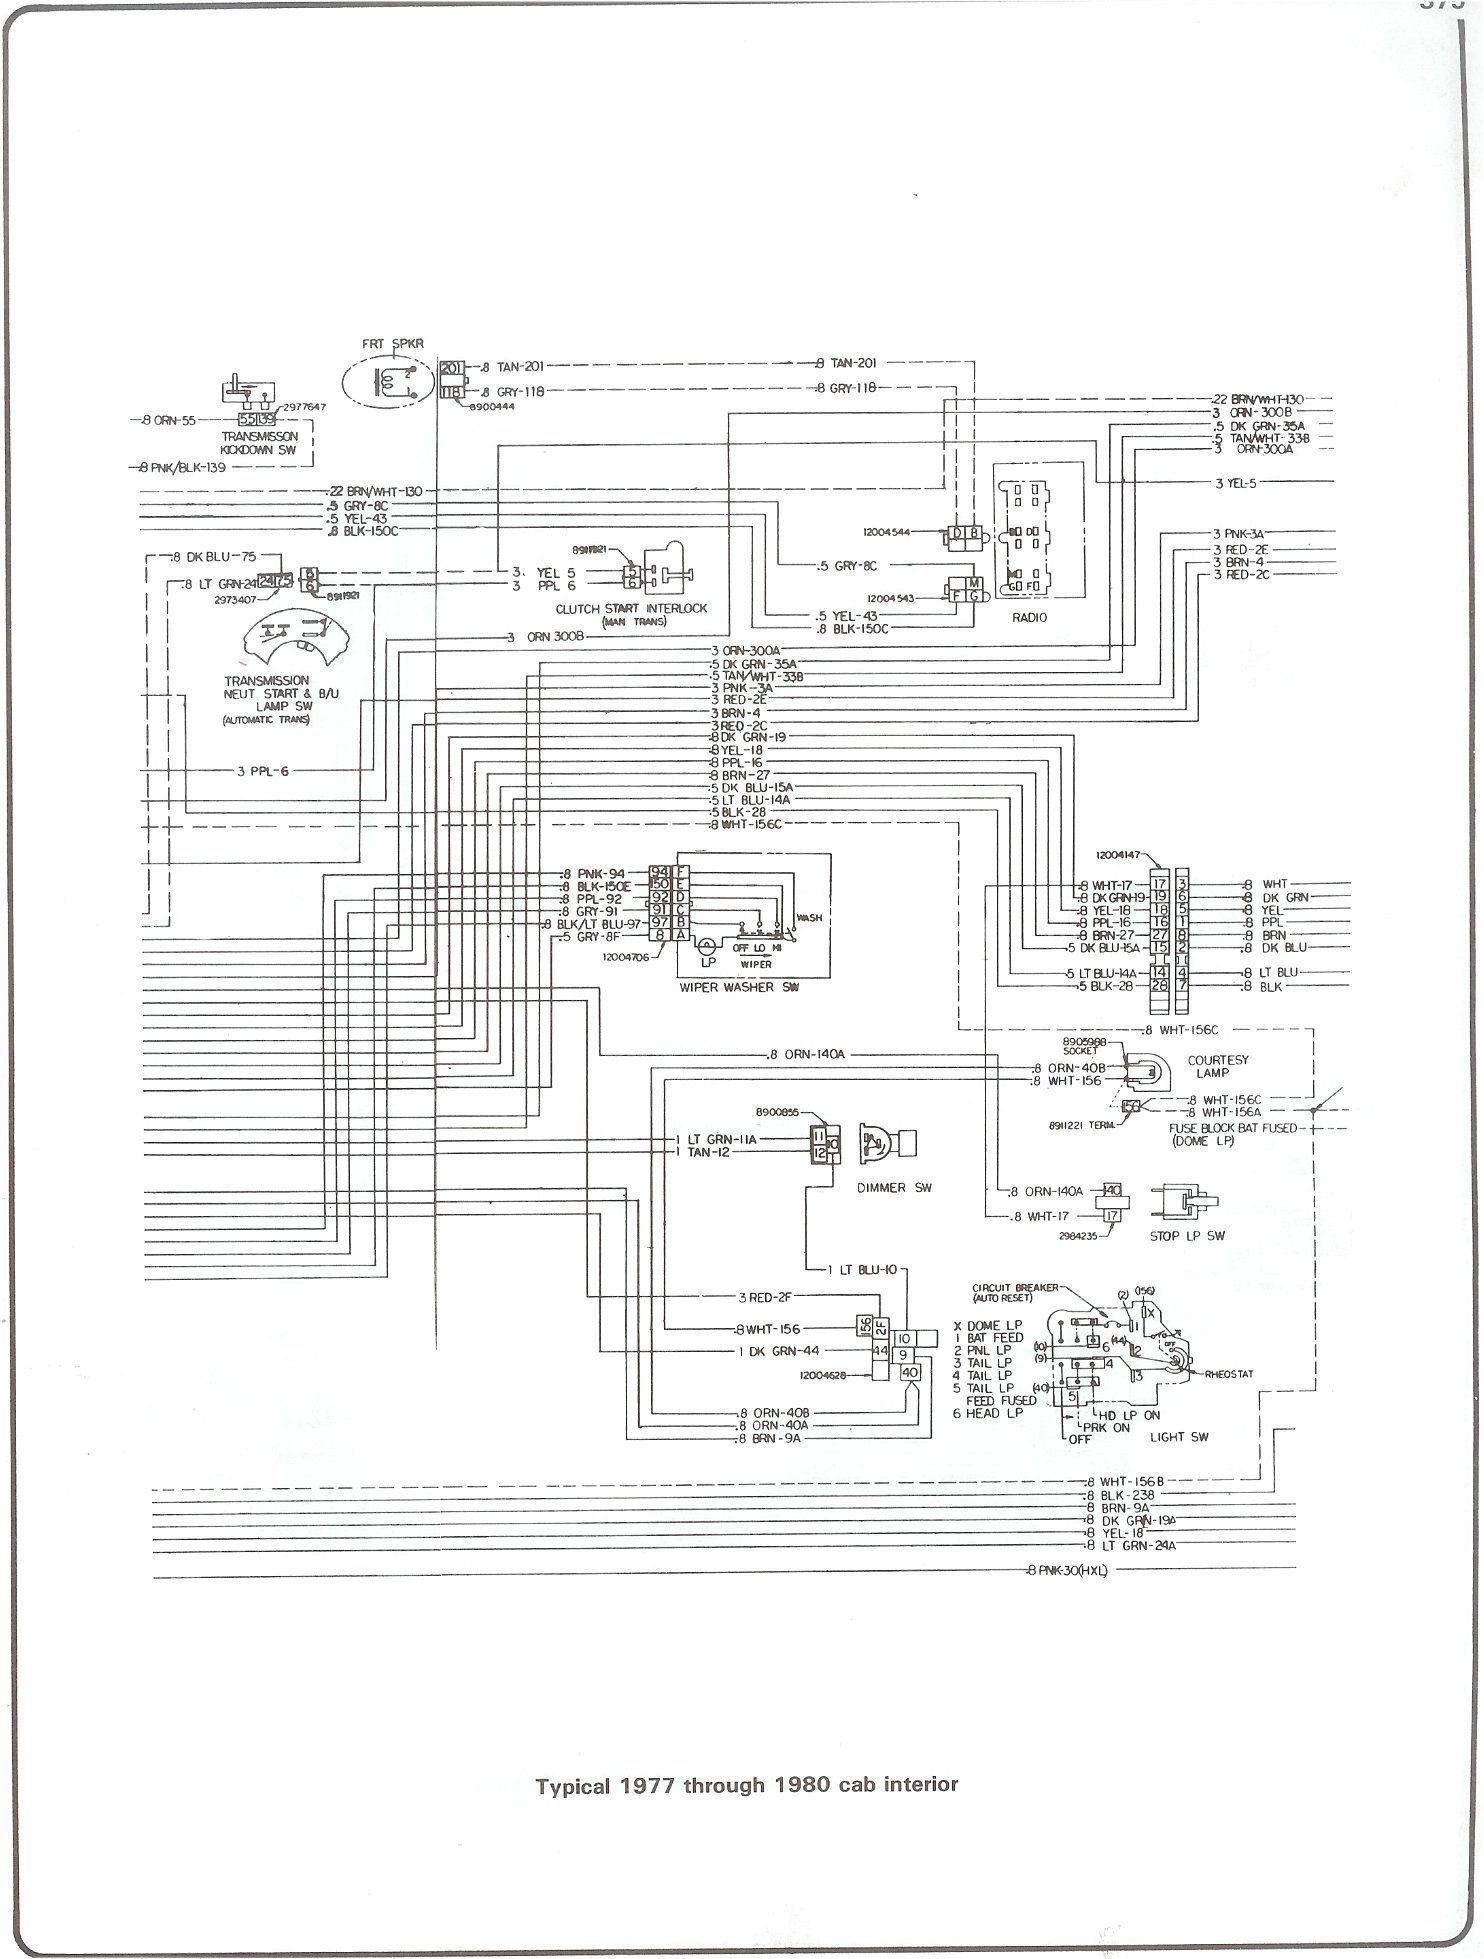 Complete 73 87 Wiring Diagrams 1990 Mustang 5 0 Engine Diagram 77 80 Cab Interior